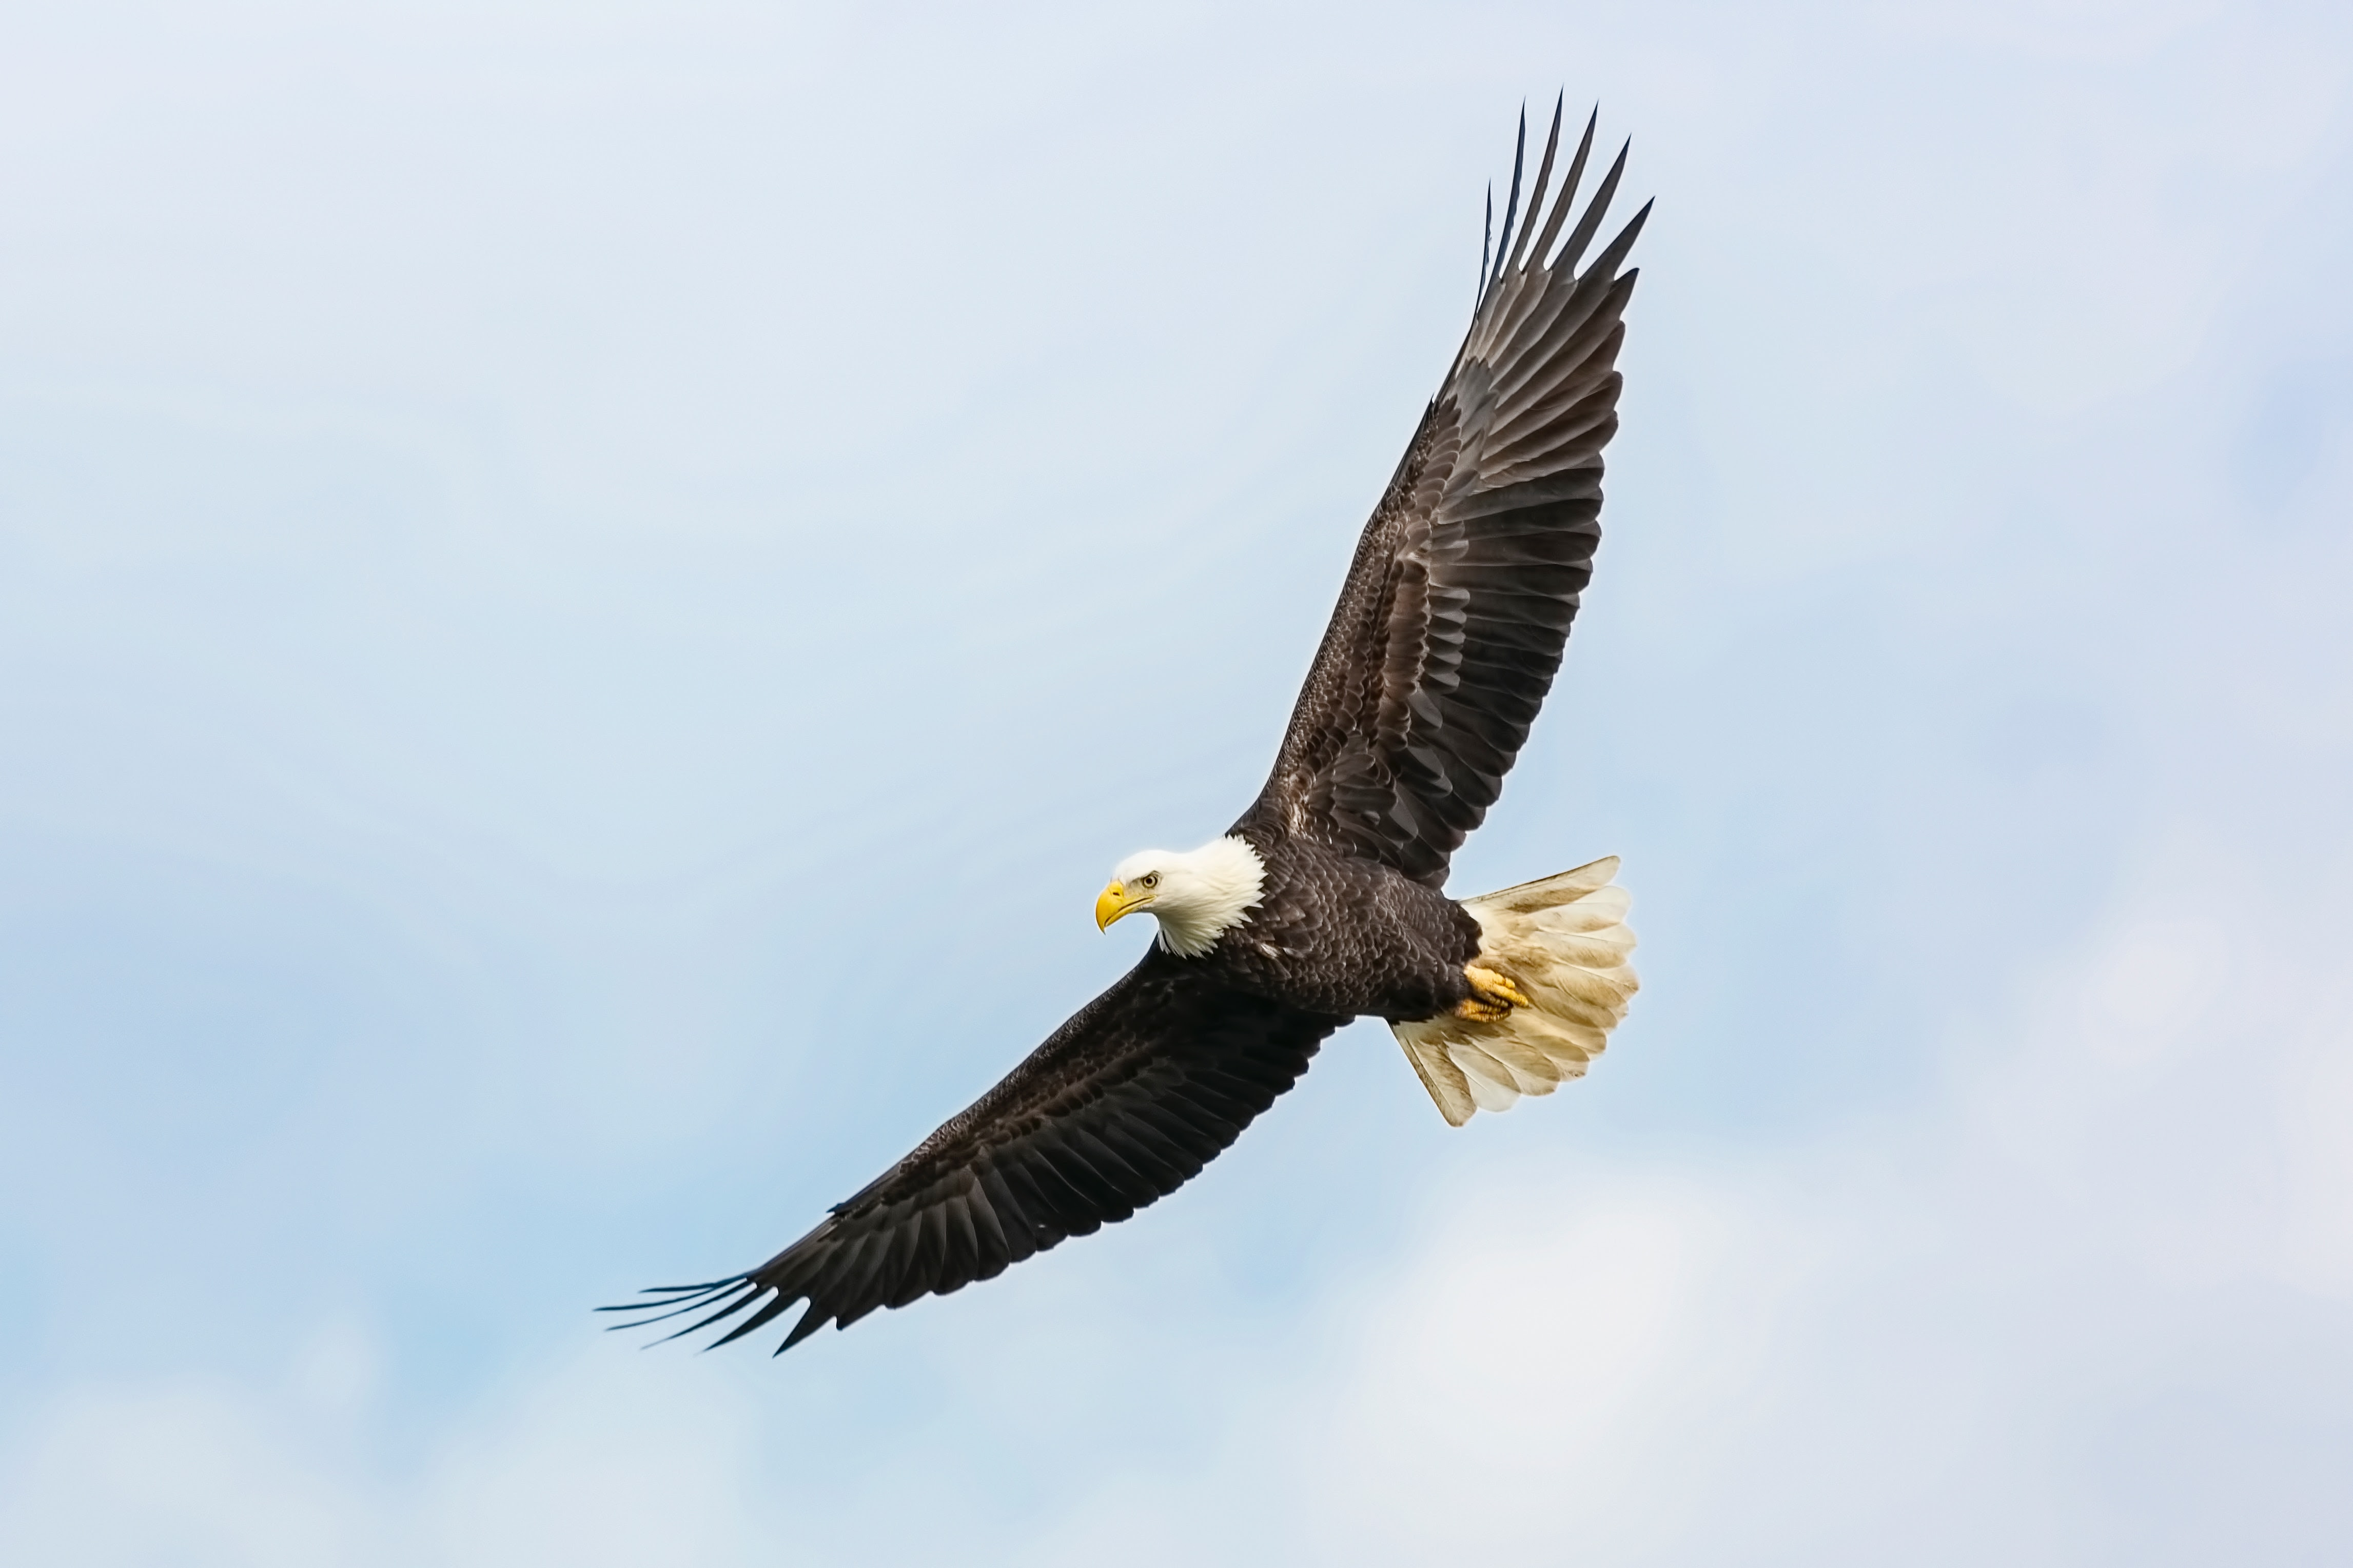 The bald eagle was saved by the ESA